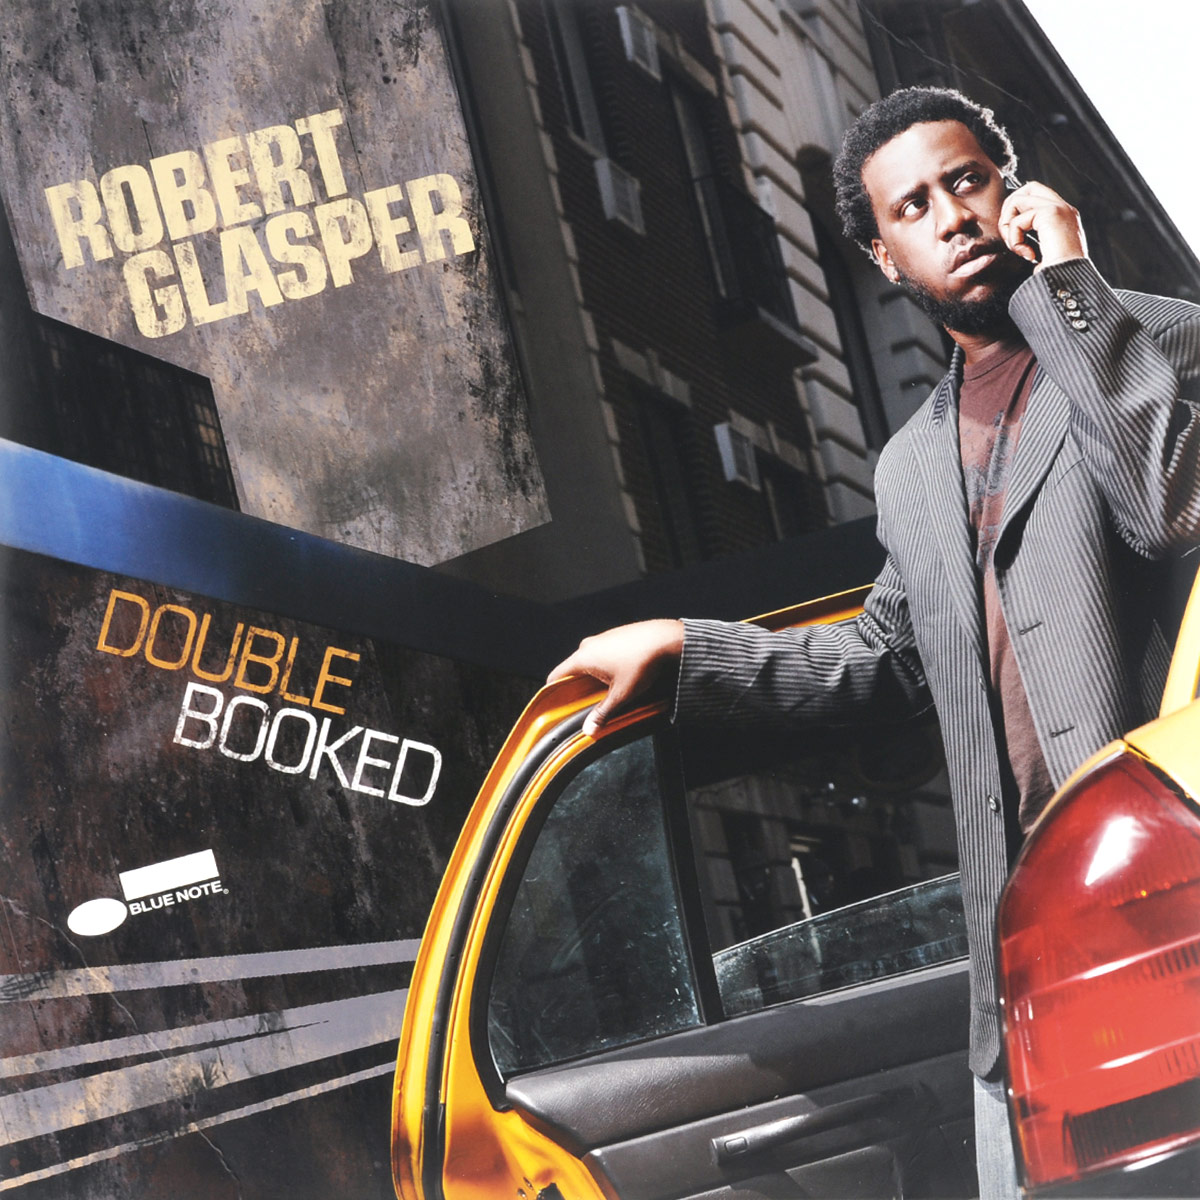 цена на Robert Glasper Robert  Glasper. Double Booked (2 LP)